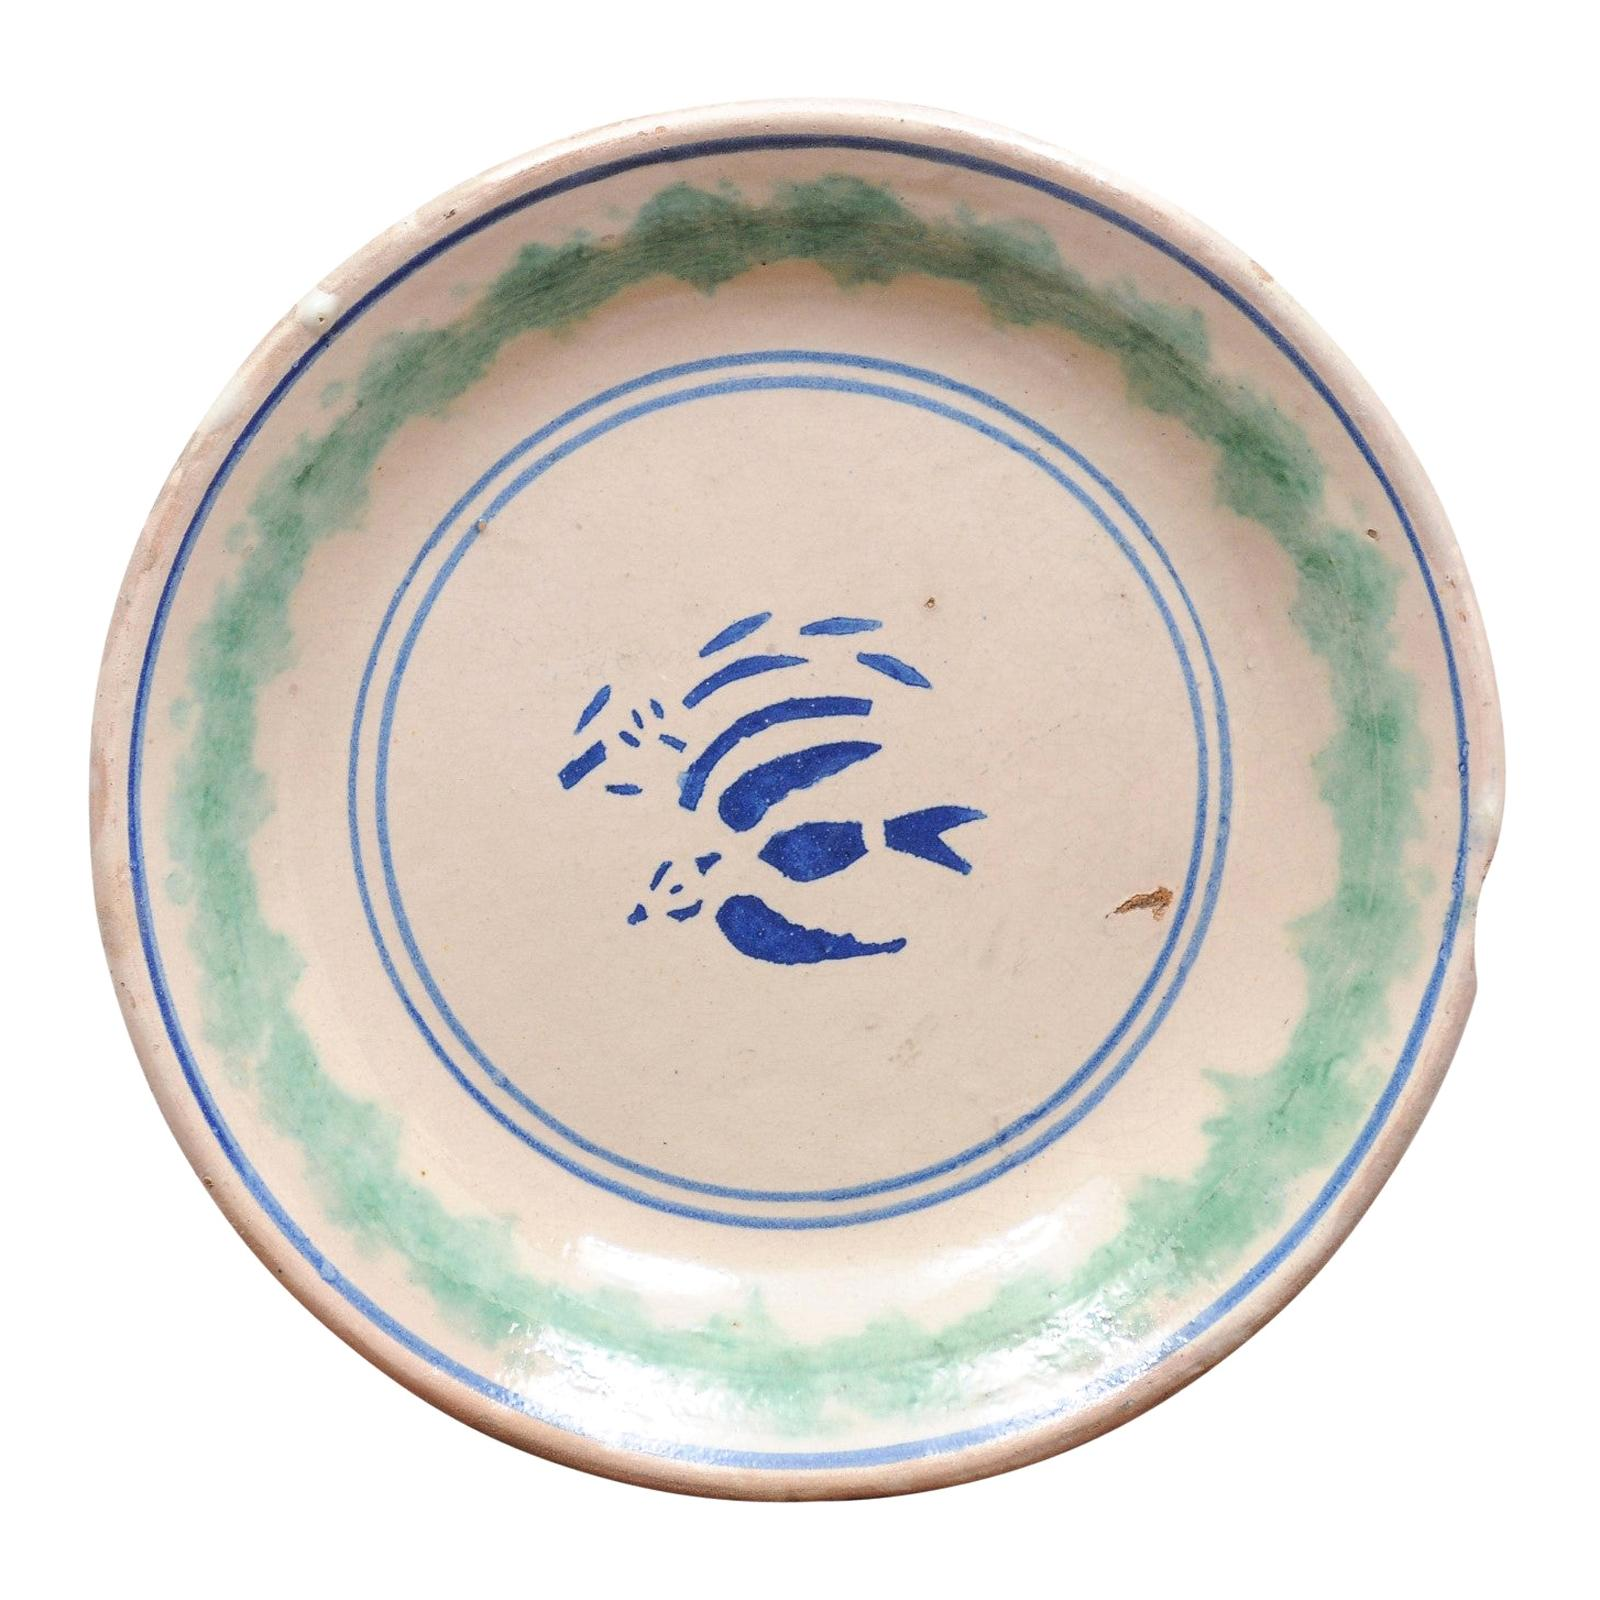 Italian 19th Century Plate with Stylized Blue Bird Motifs and Green Accents